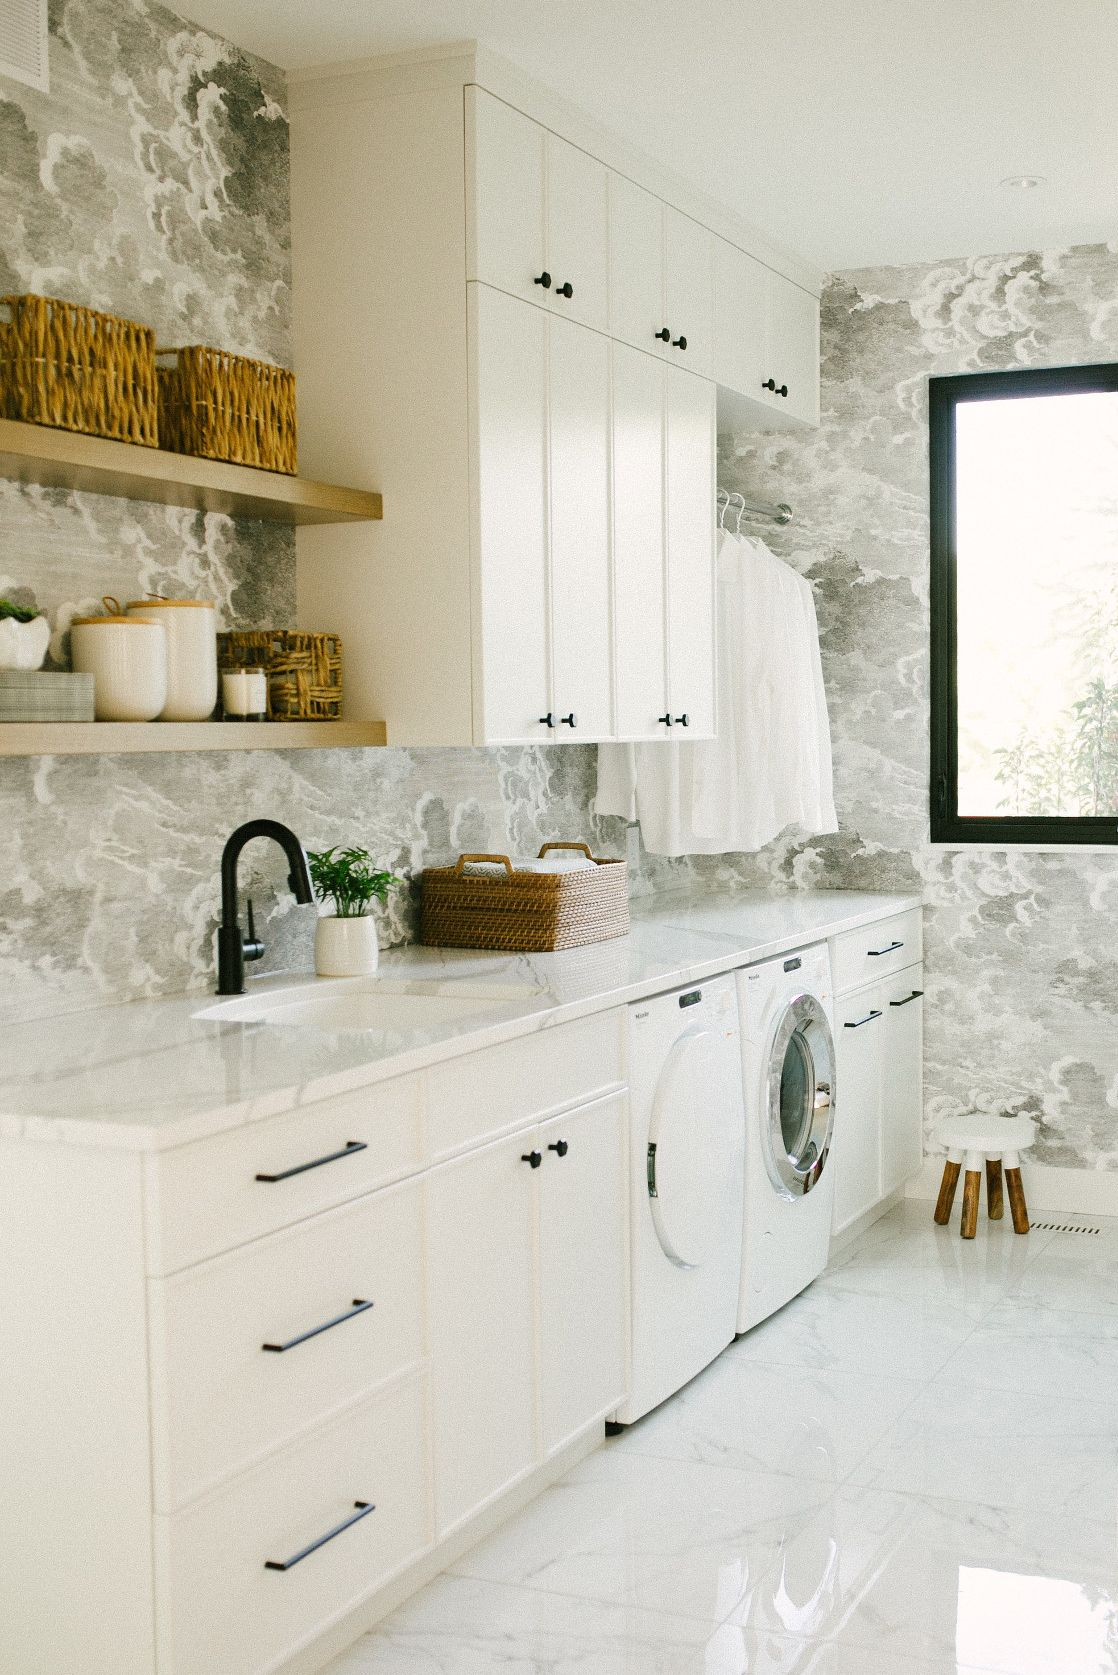 Cambria Brittanicca paired with white cabinets and matte black accents in a laundry room.